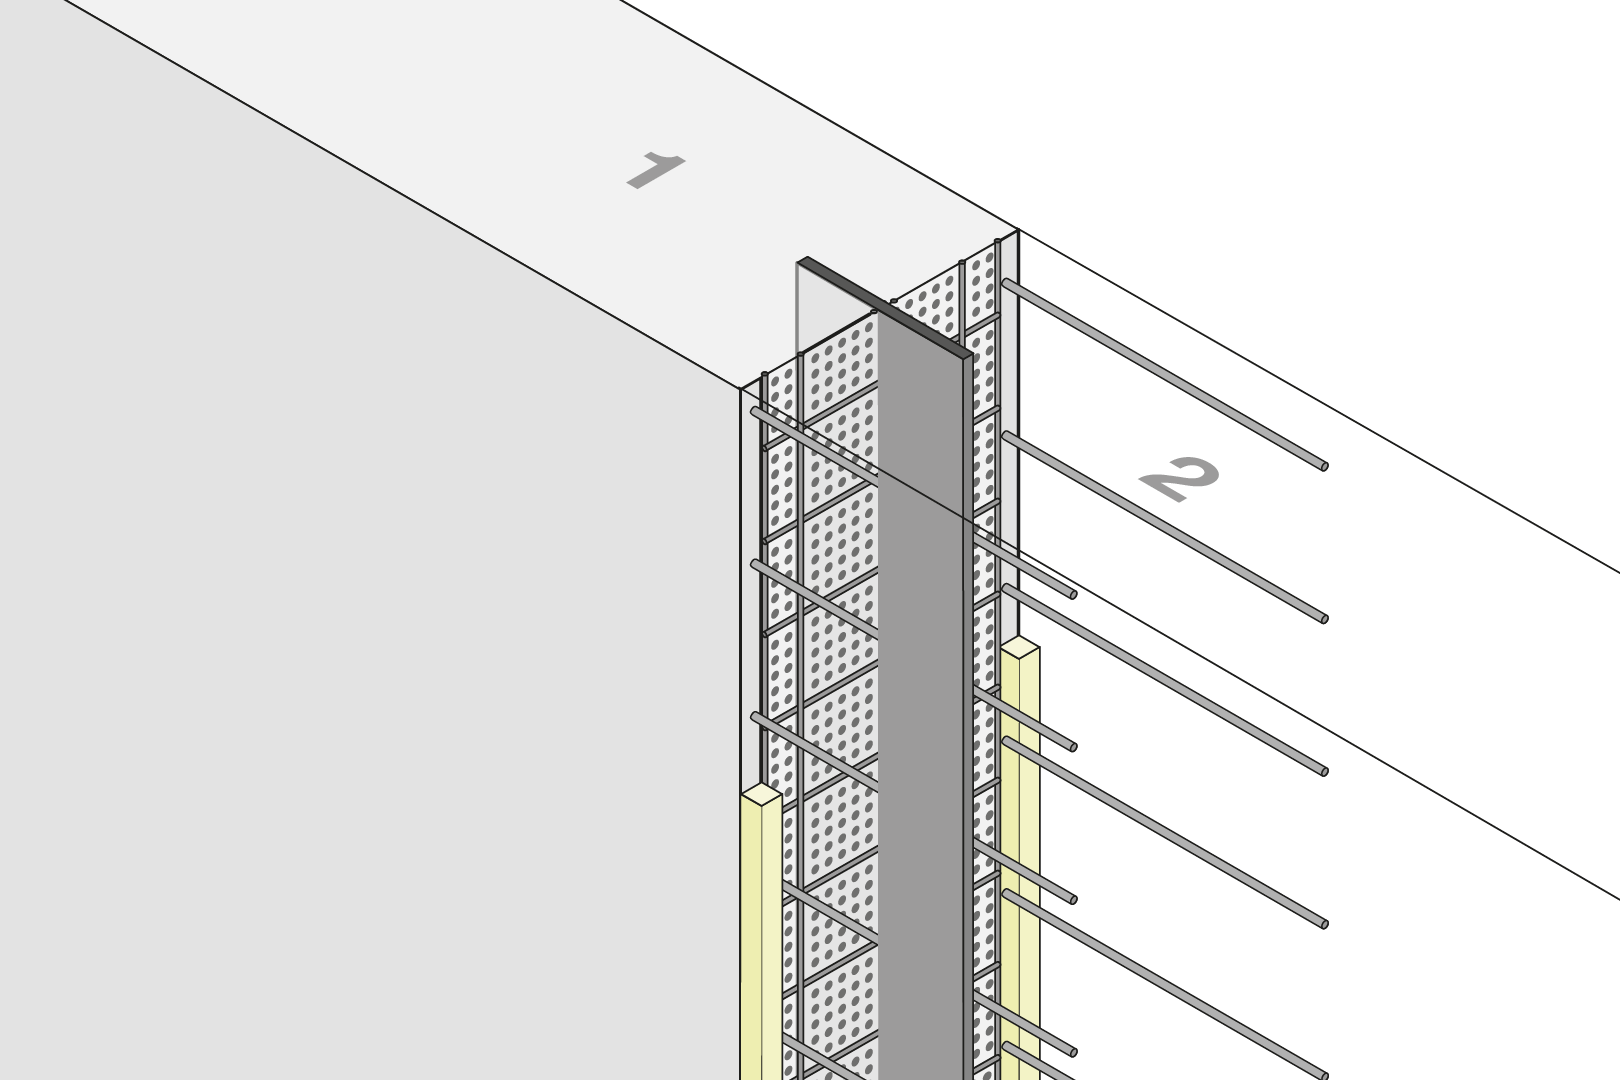 Construction Joint Formwork Element With Metal Waterstop - Wall